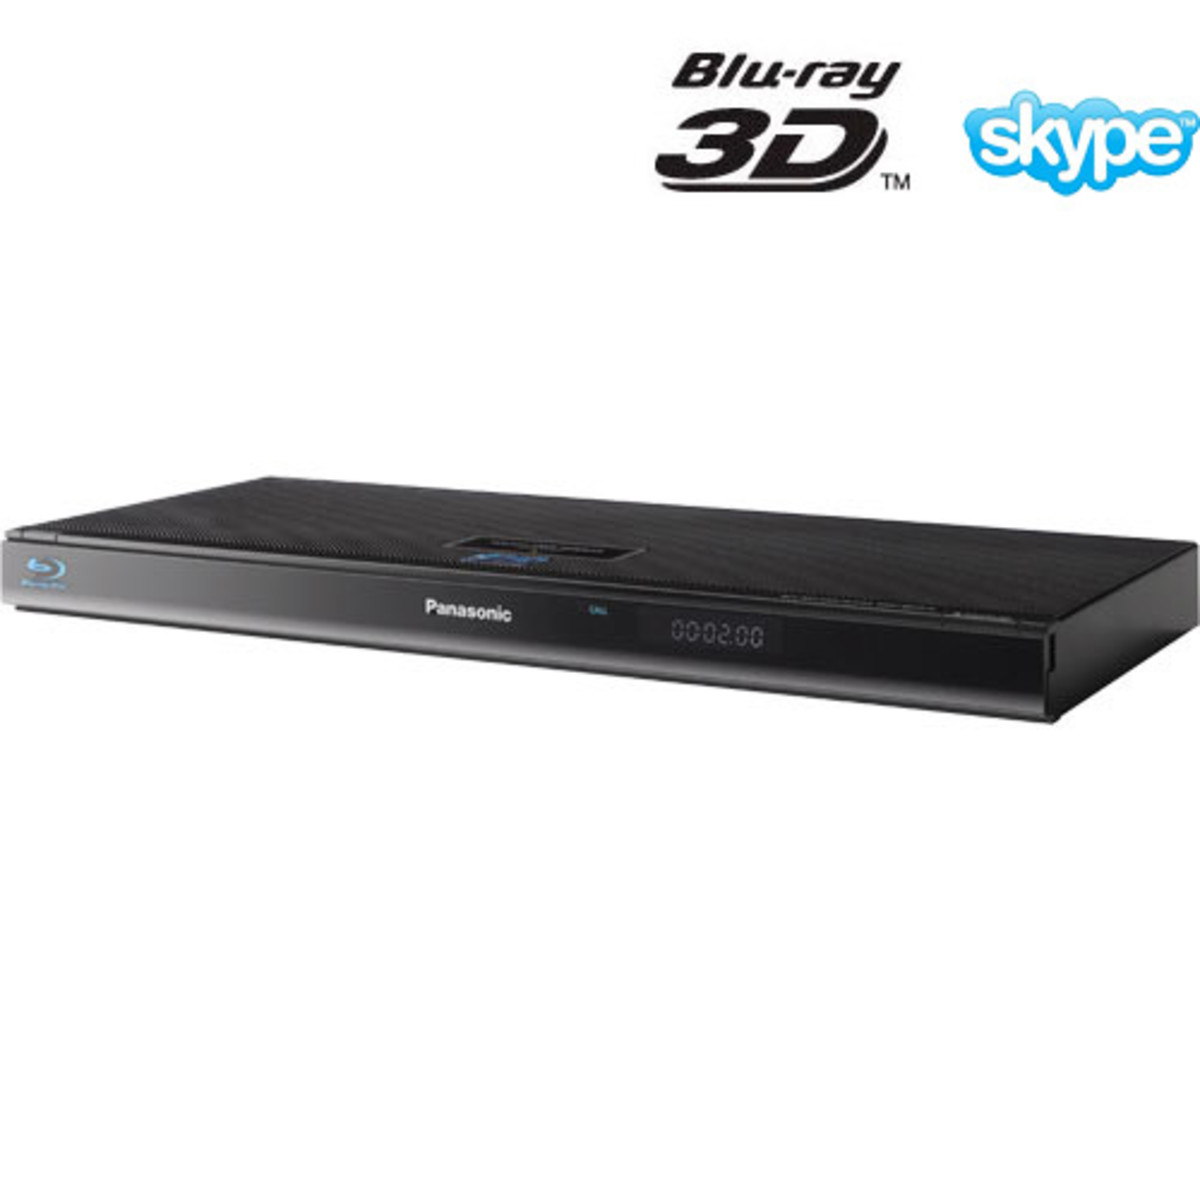 The Panasonic DMP-BDT210 AND DMP-BDT110 Blu-ray player supports 3D video output.